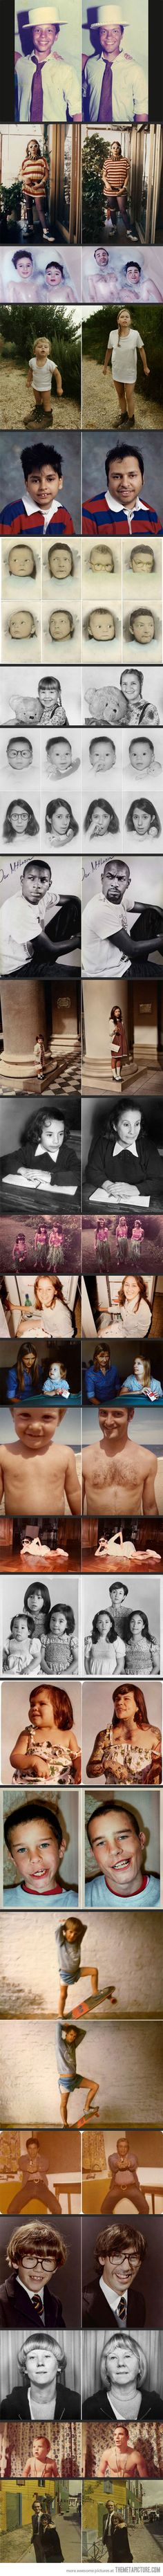 Then and Now Photos - These are great!